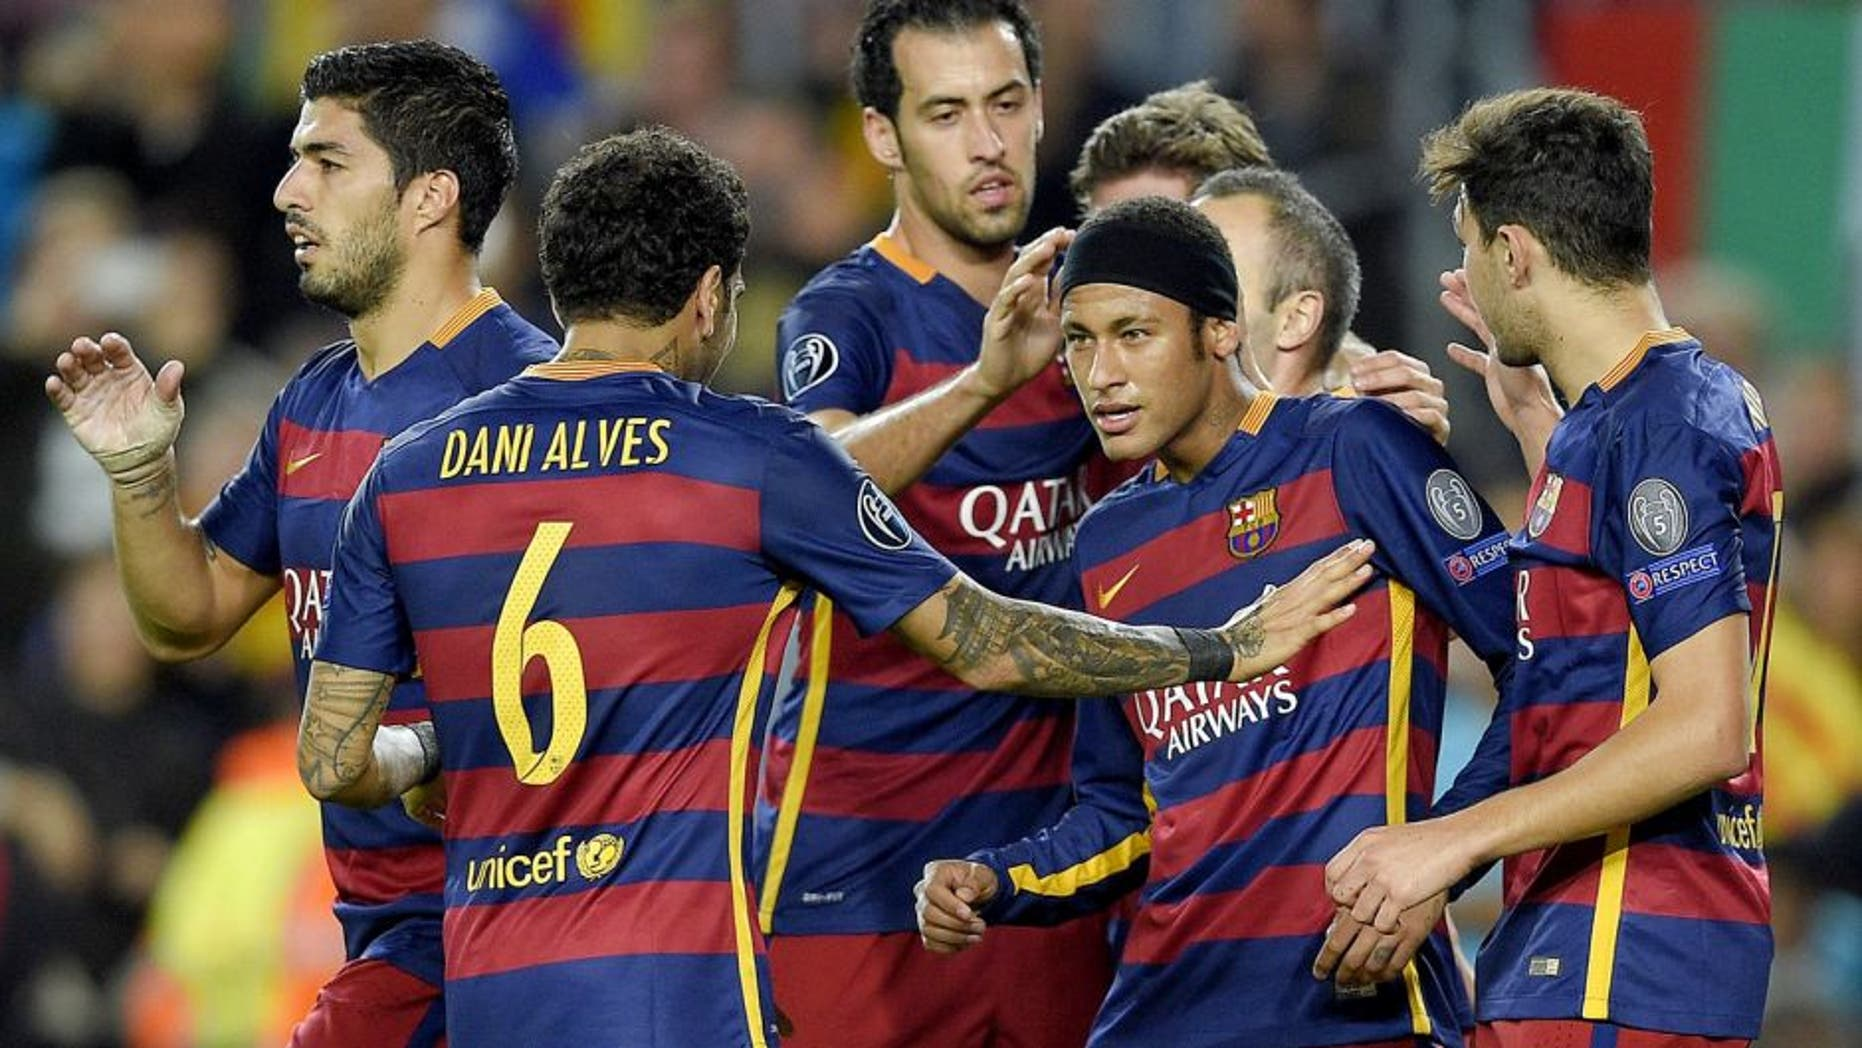 Barcelona's Brazilian forward Neymar (2ndR) celebrates with his teammates after scoring a goal during the UEFA Champions League group E football match FC Barcelona vs FC BATE Borisov at the Camp Nou stadium in Barcelona on November 4, 2015. AFP PHOTO/ LLUIS GENE (Photo credit should read LLUIS GENE/AFP/Getty Images)